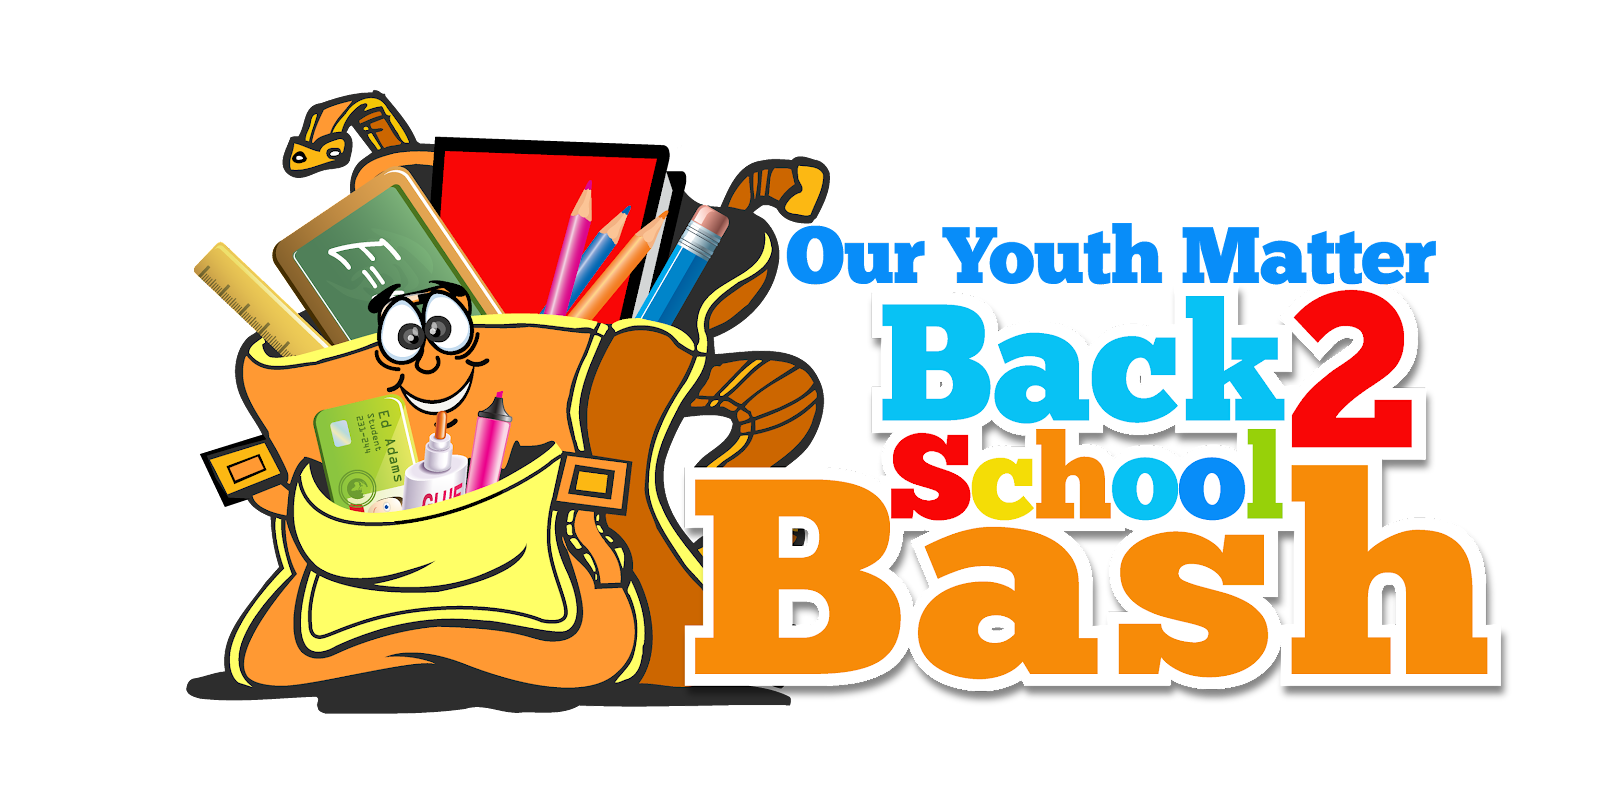 Our Youth Matter Back 2 School Bash